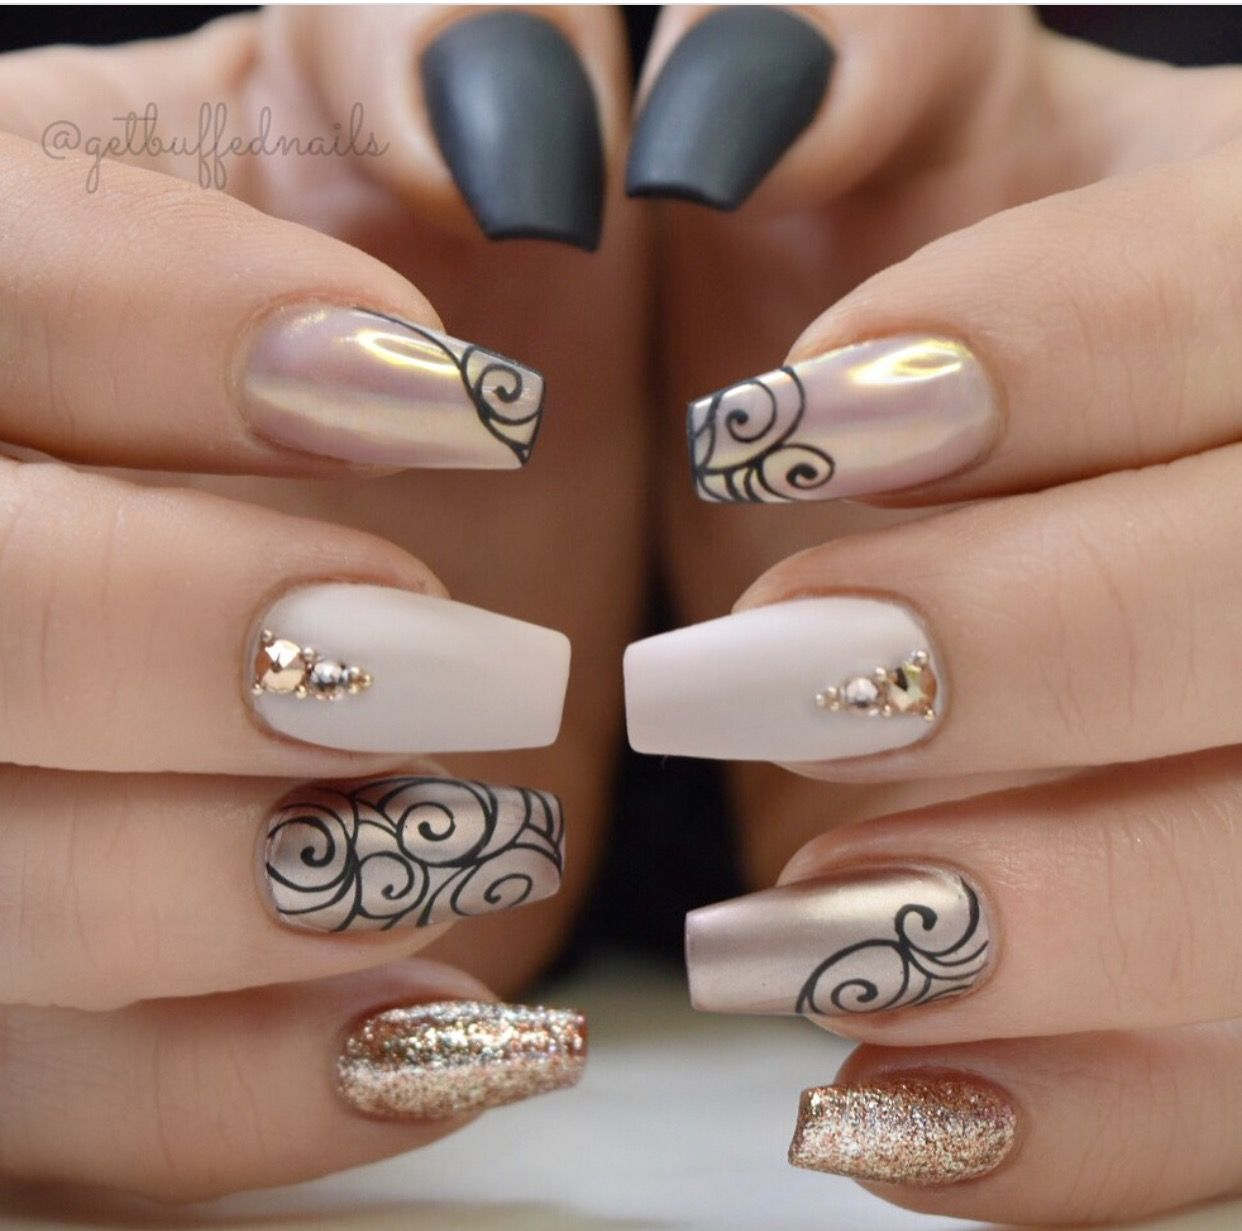 Pin by П on нігті | Pinterest | Manicure, Nail nail and Nail inspo